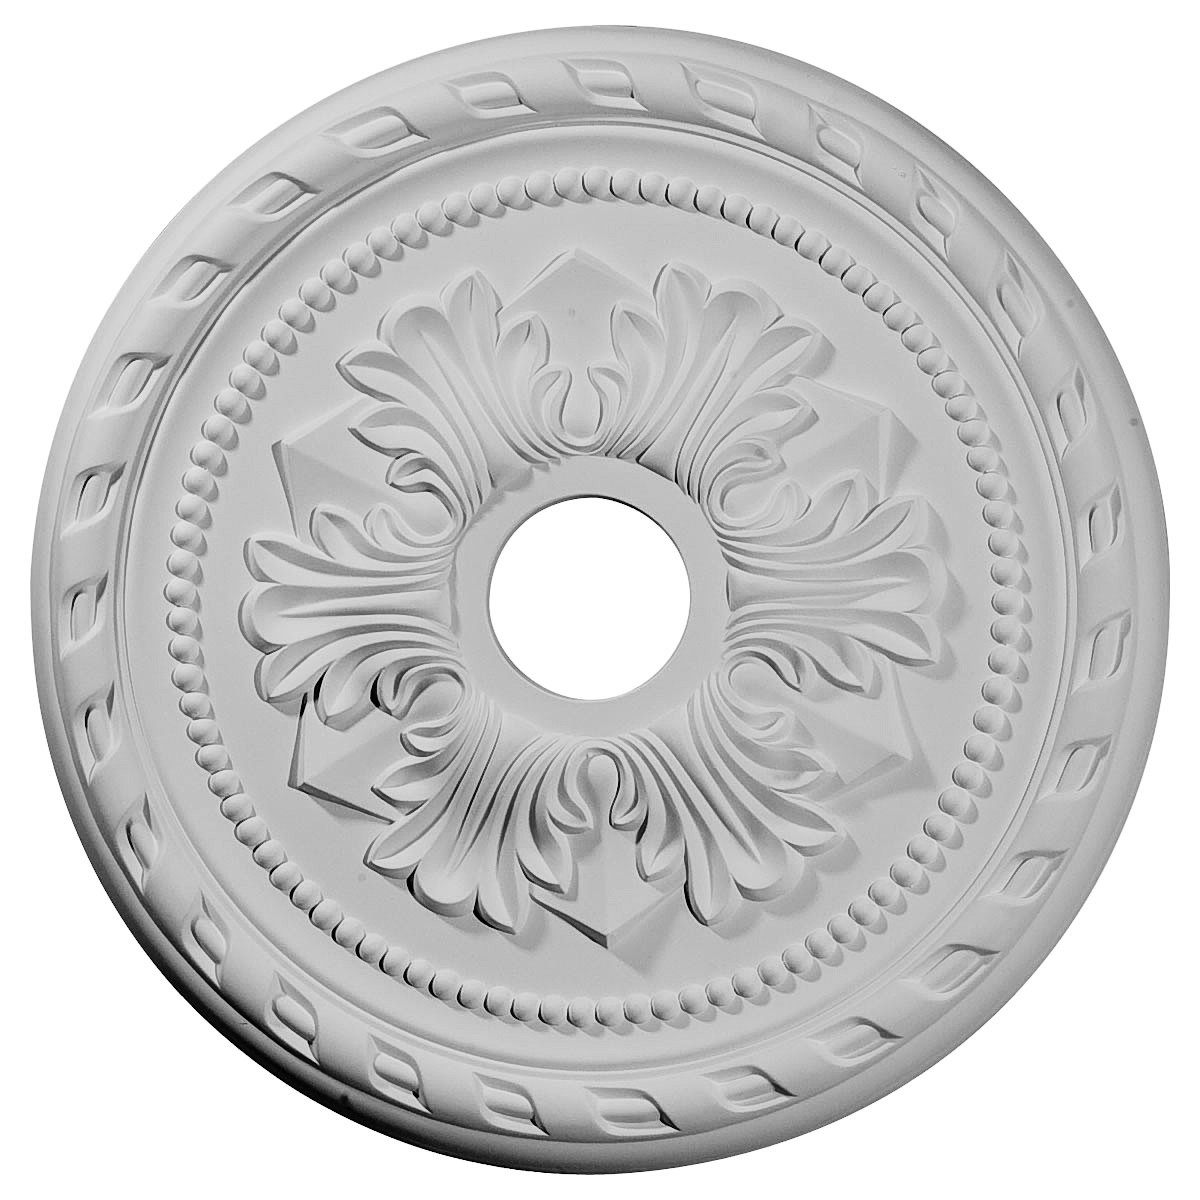 "EM-CM20PM - 20 7/8""OD x 3 5/8""ID x 1 5/8""P Palmetto Ceiling Medallion (Fits Canopies up to 5"")"